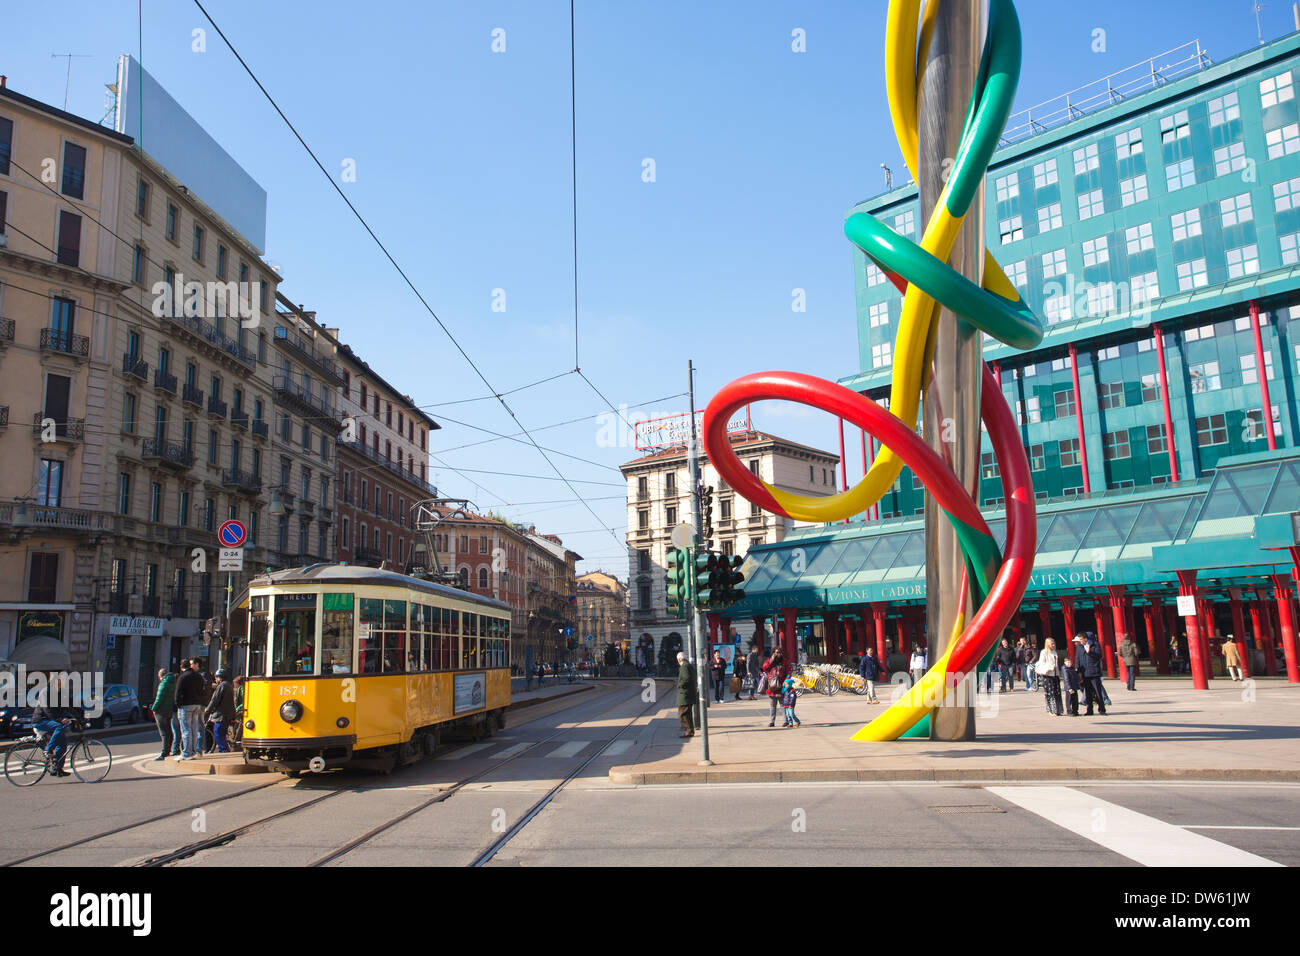 Piazzale Cadorna, Ferrovie Nord Railway Station, Milan, Milano, Lombardy, Italy - Stock Image